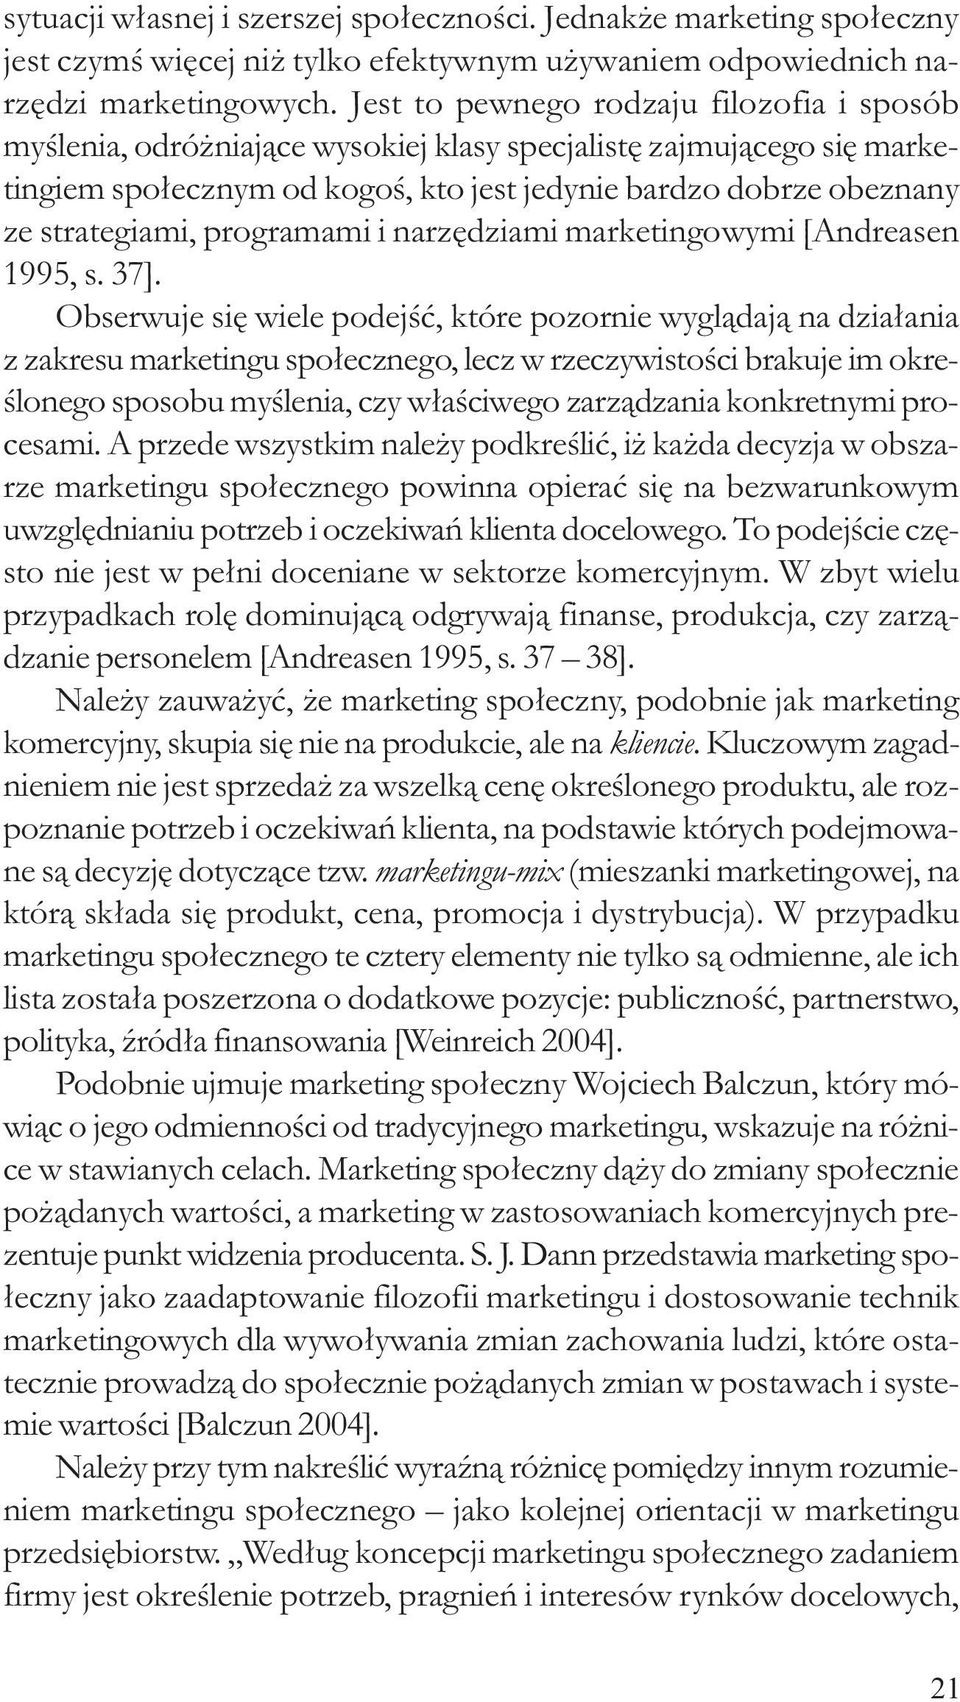 programami i narzêdziami marketingowymi [Andreasen 1995, s. 37].